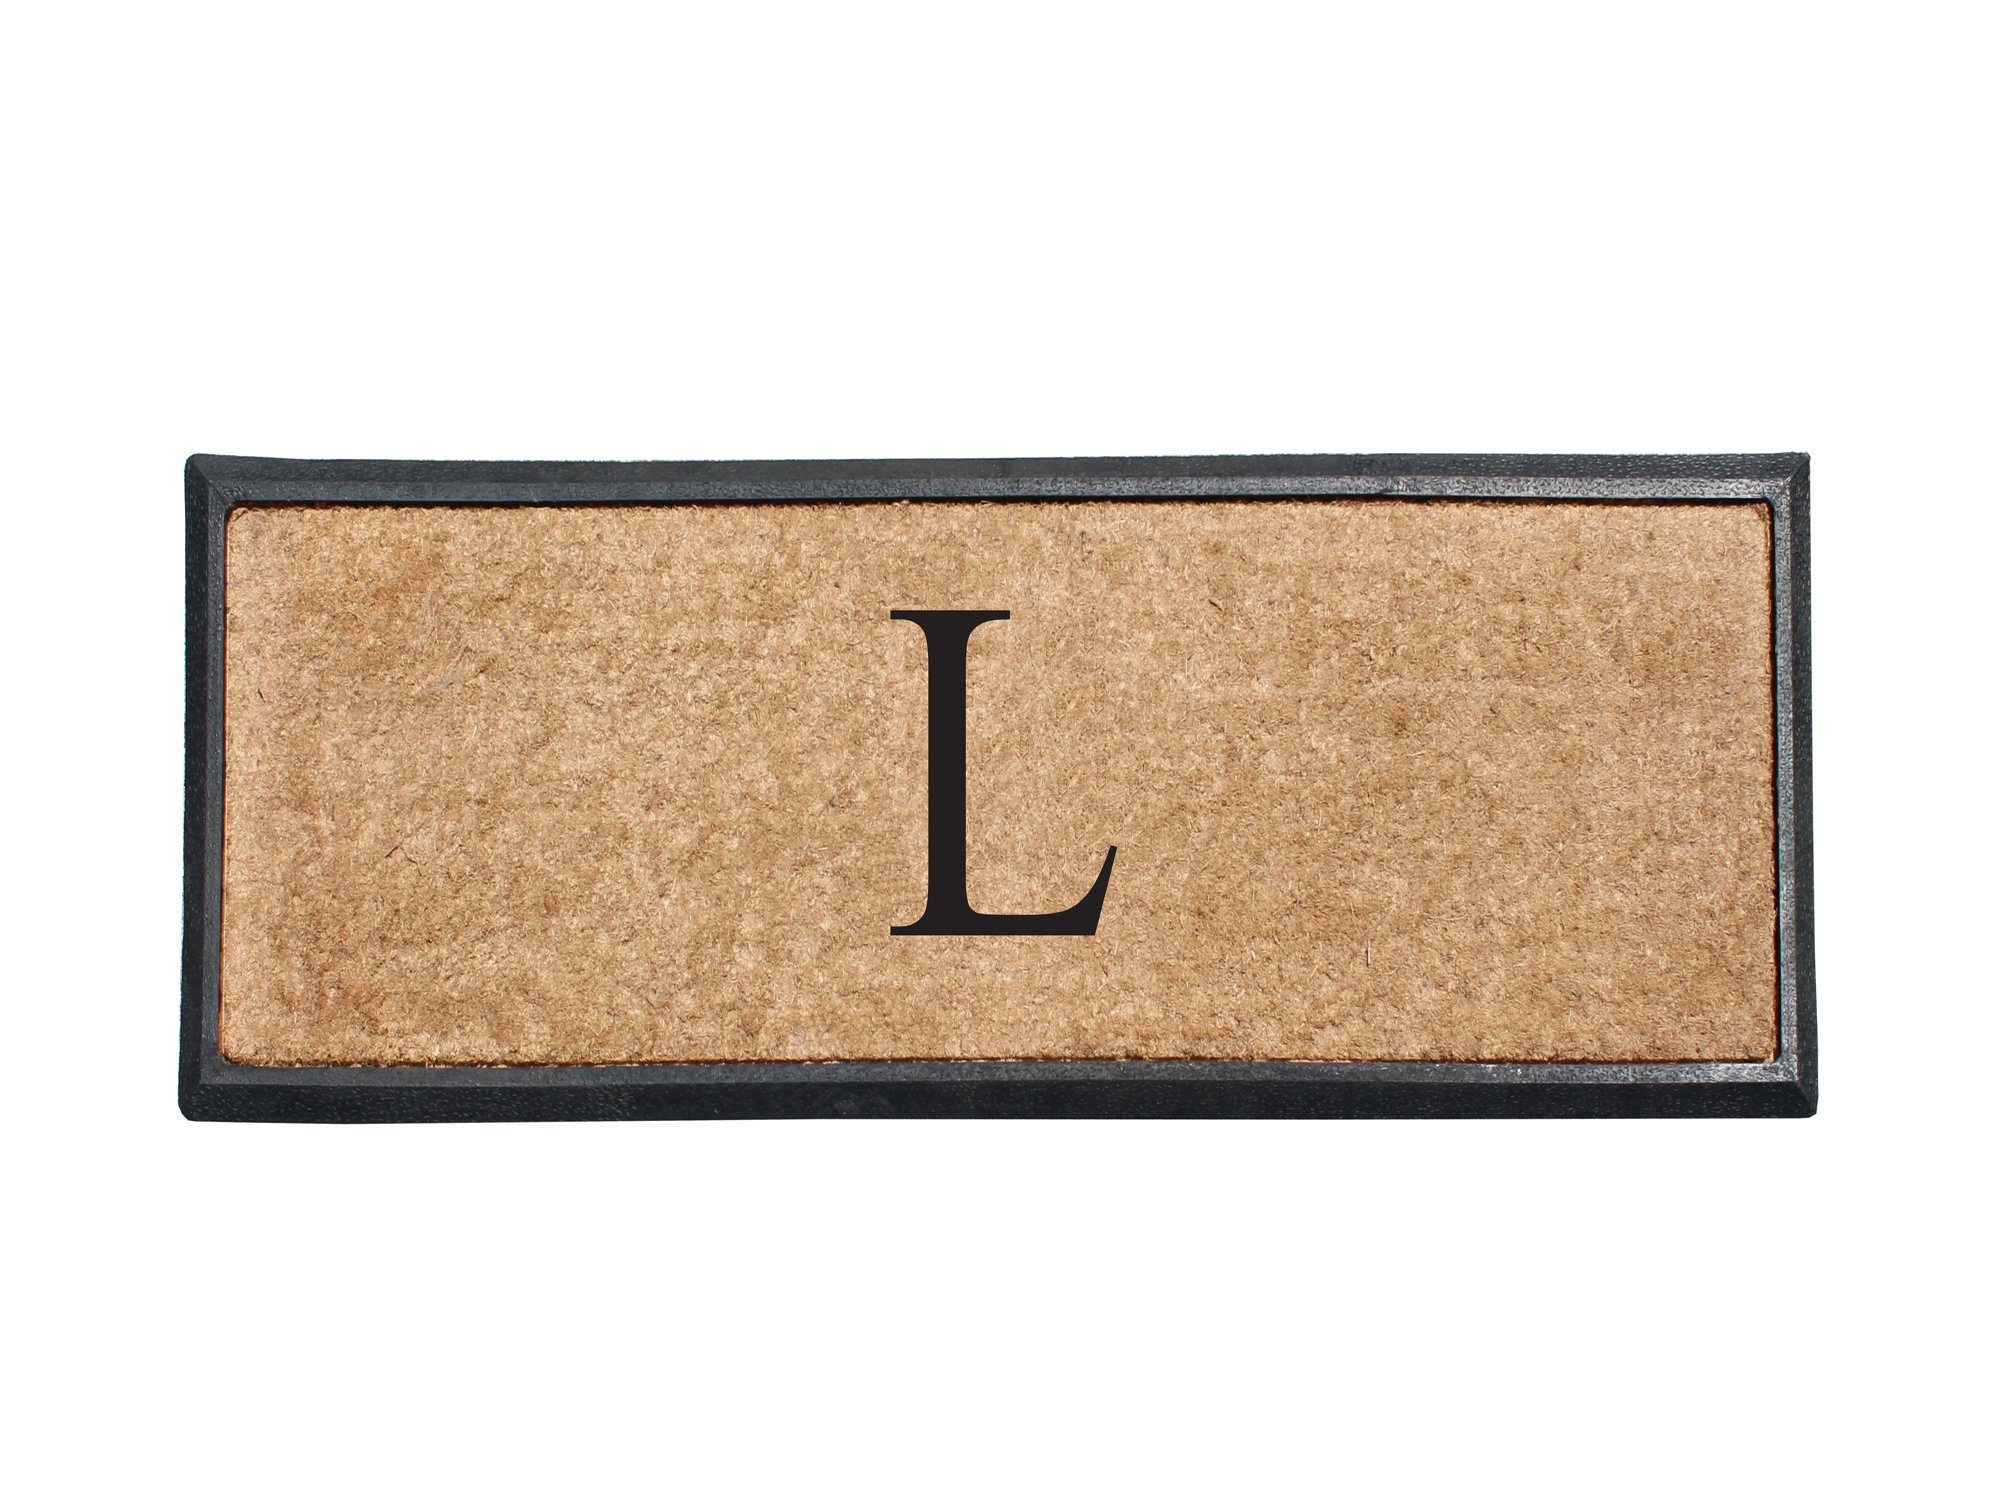 A1 Home Collections First Impression Rubber and Coir Molded Double Doormat, 16'' L x 48'' W, Monogrammed L